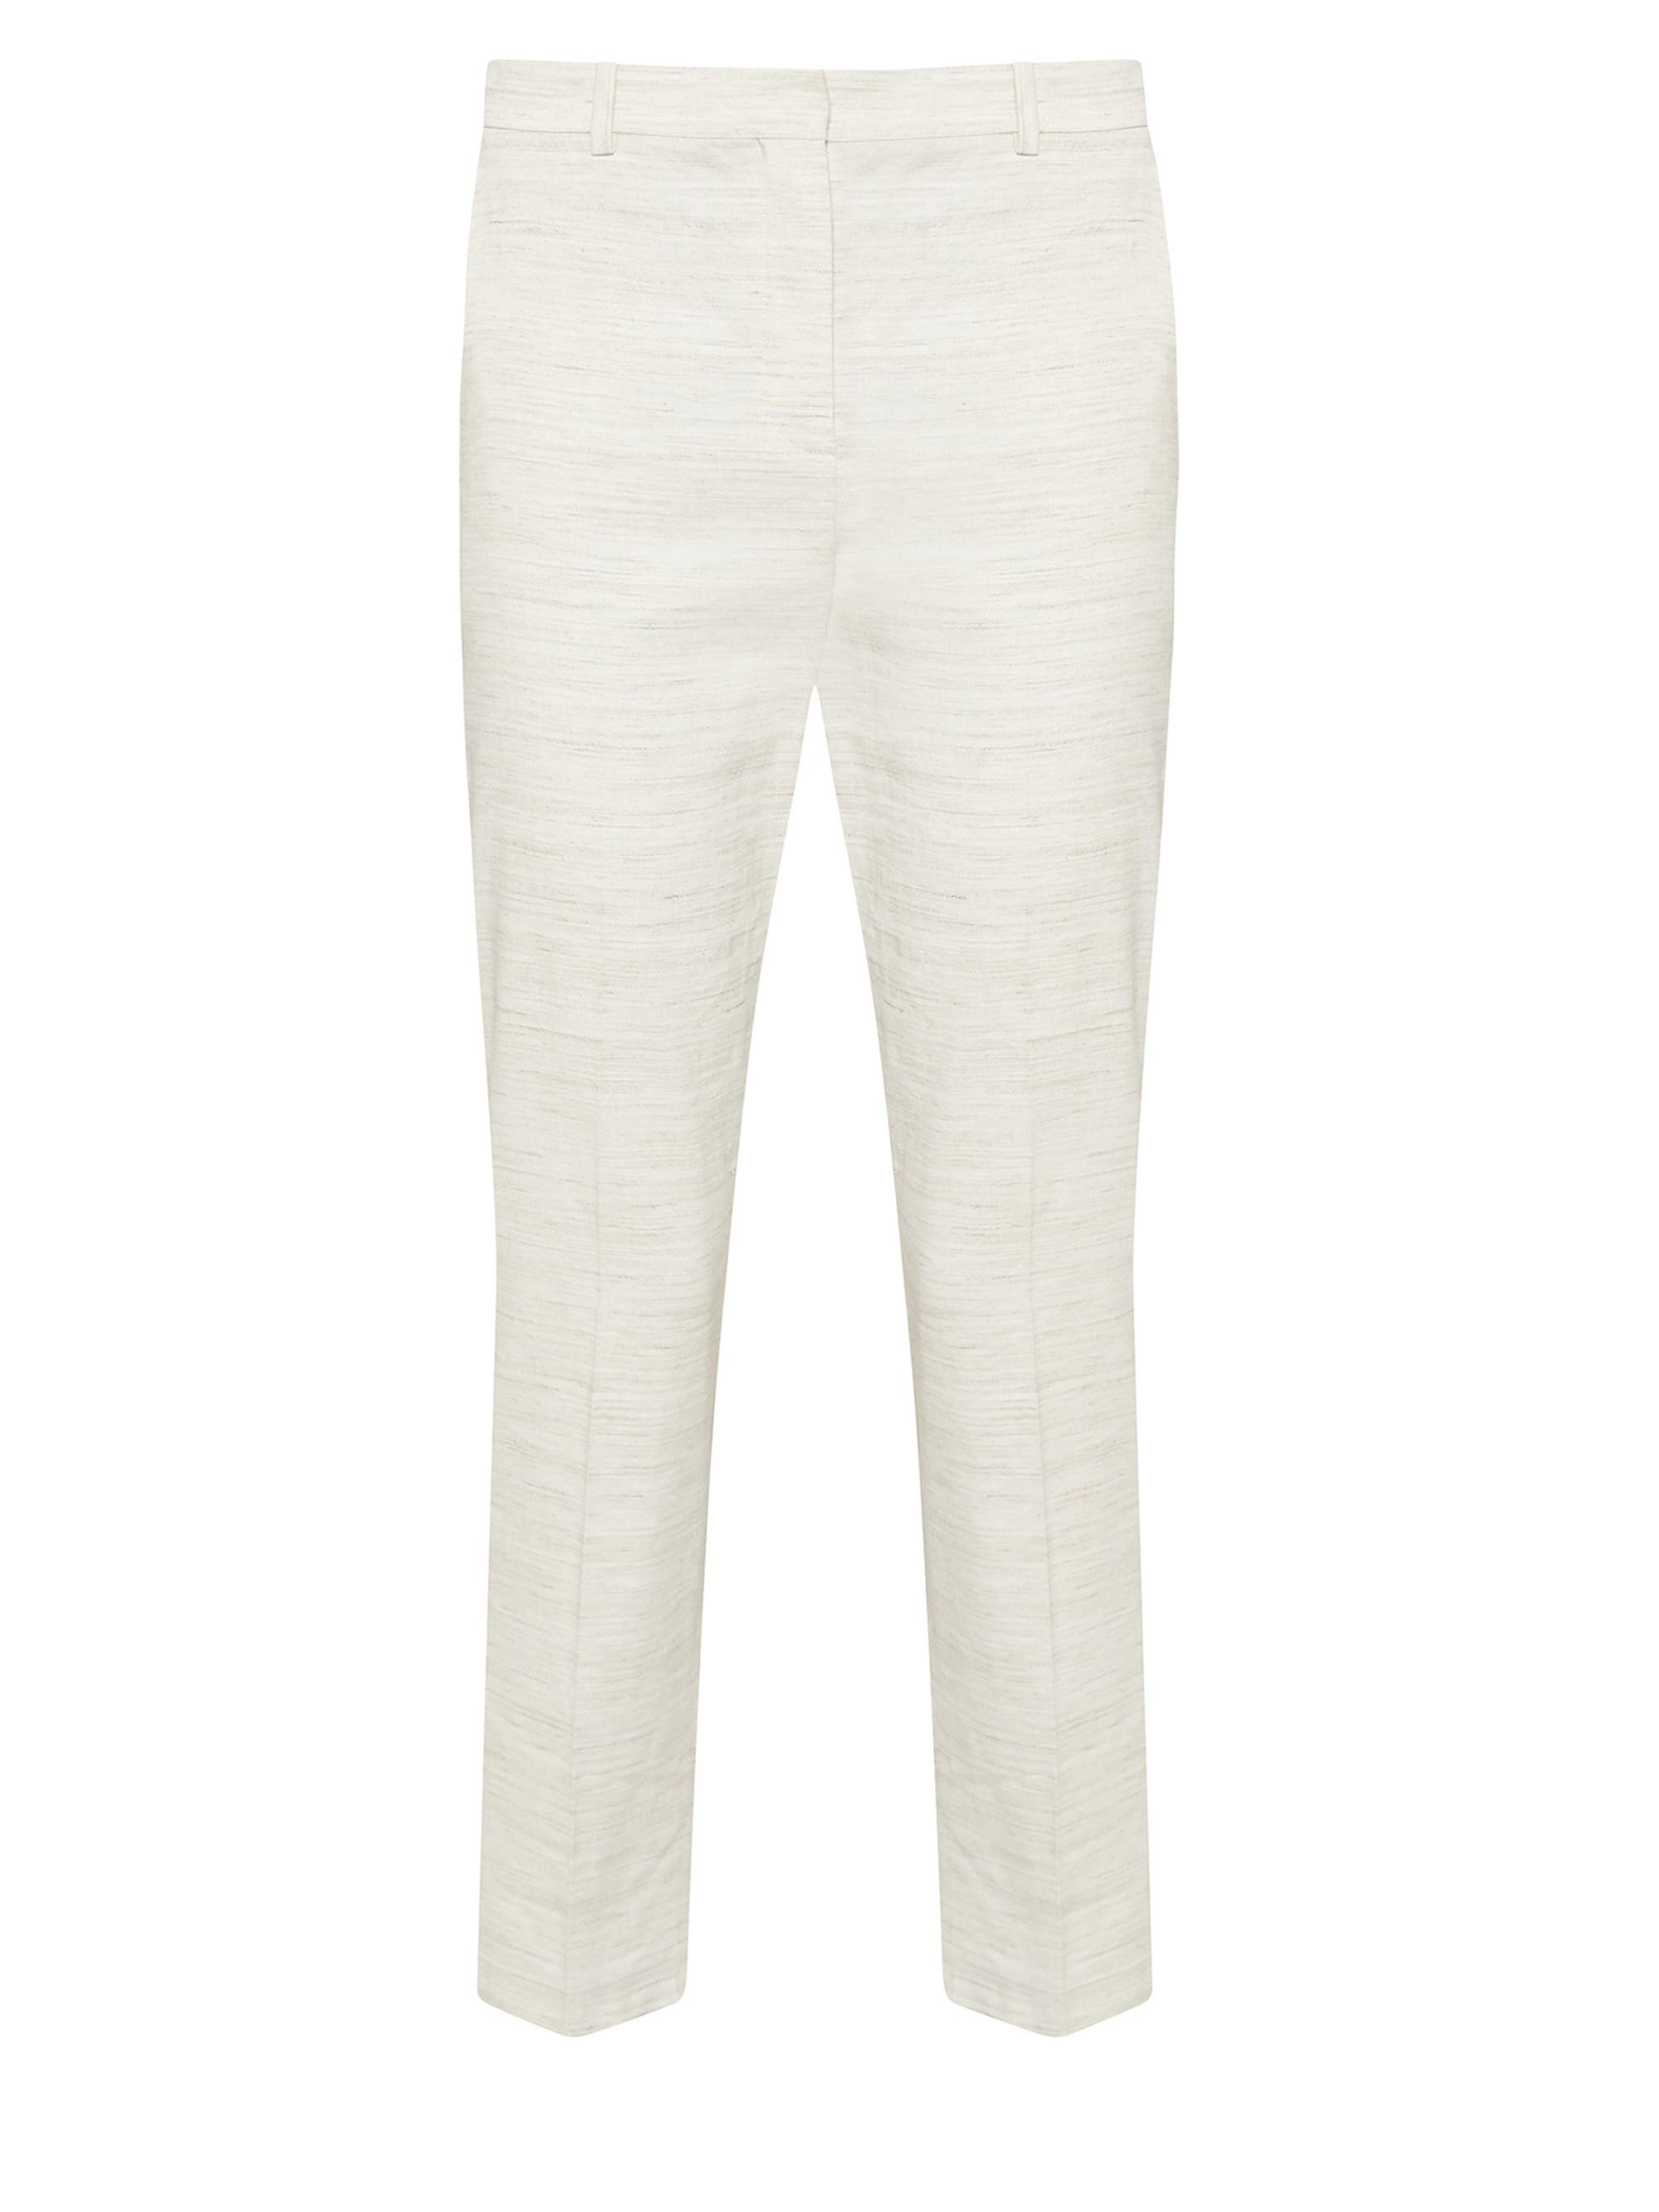 bdf02a625b Theory Sharkskin Crunch Slim Crop Trousers in White - Lyst